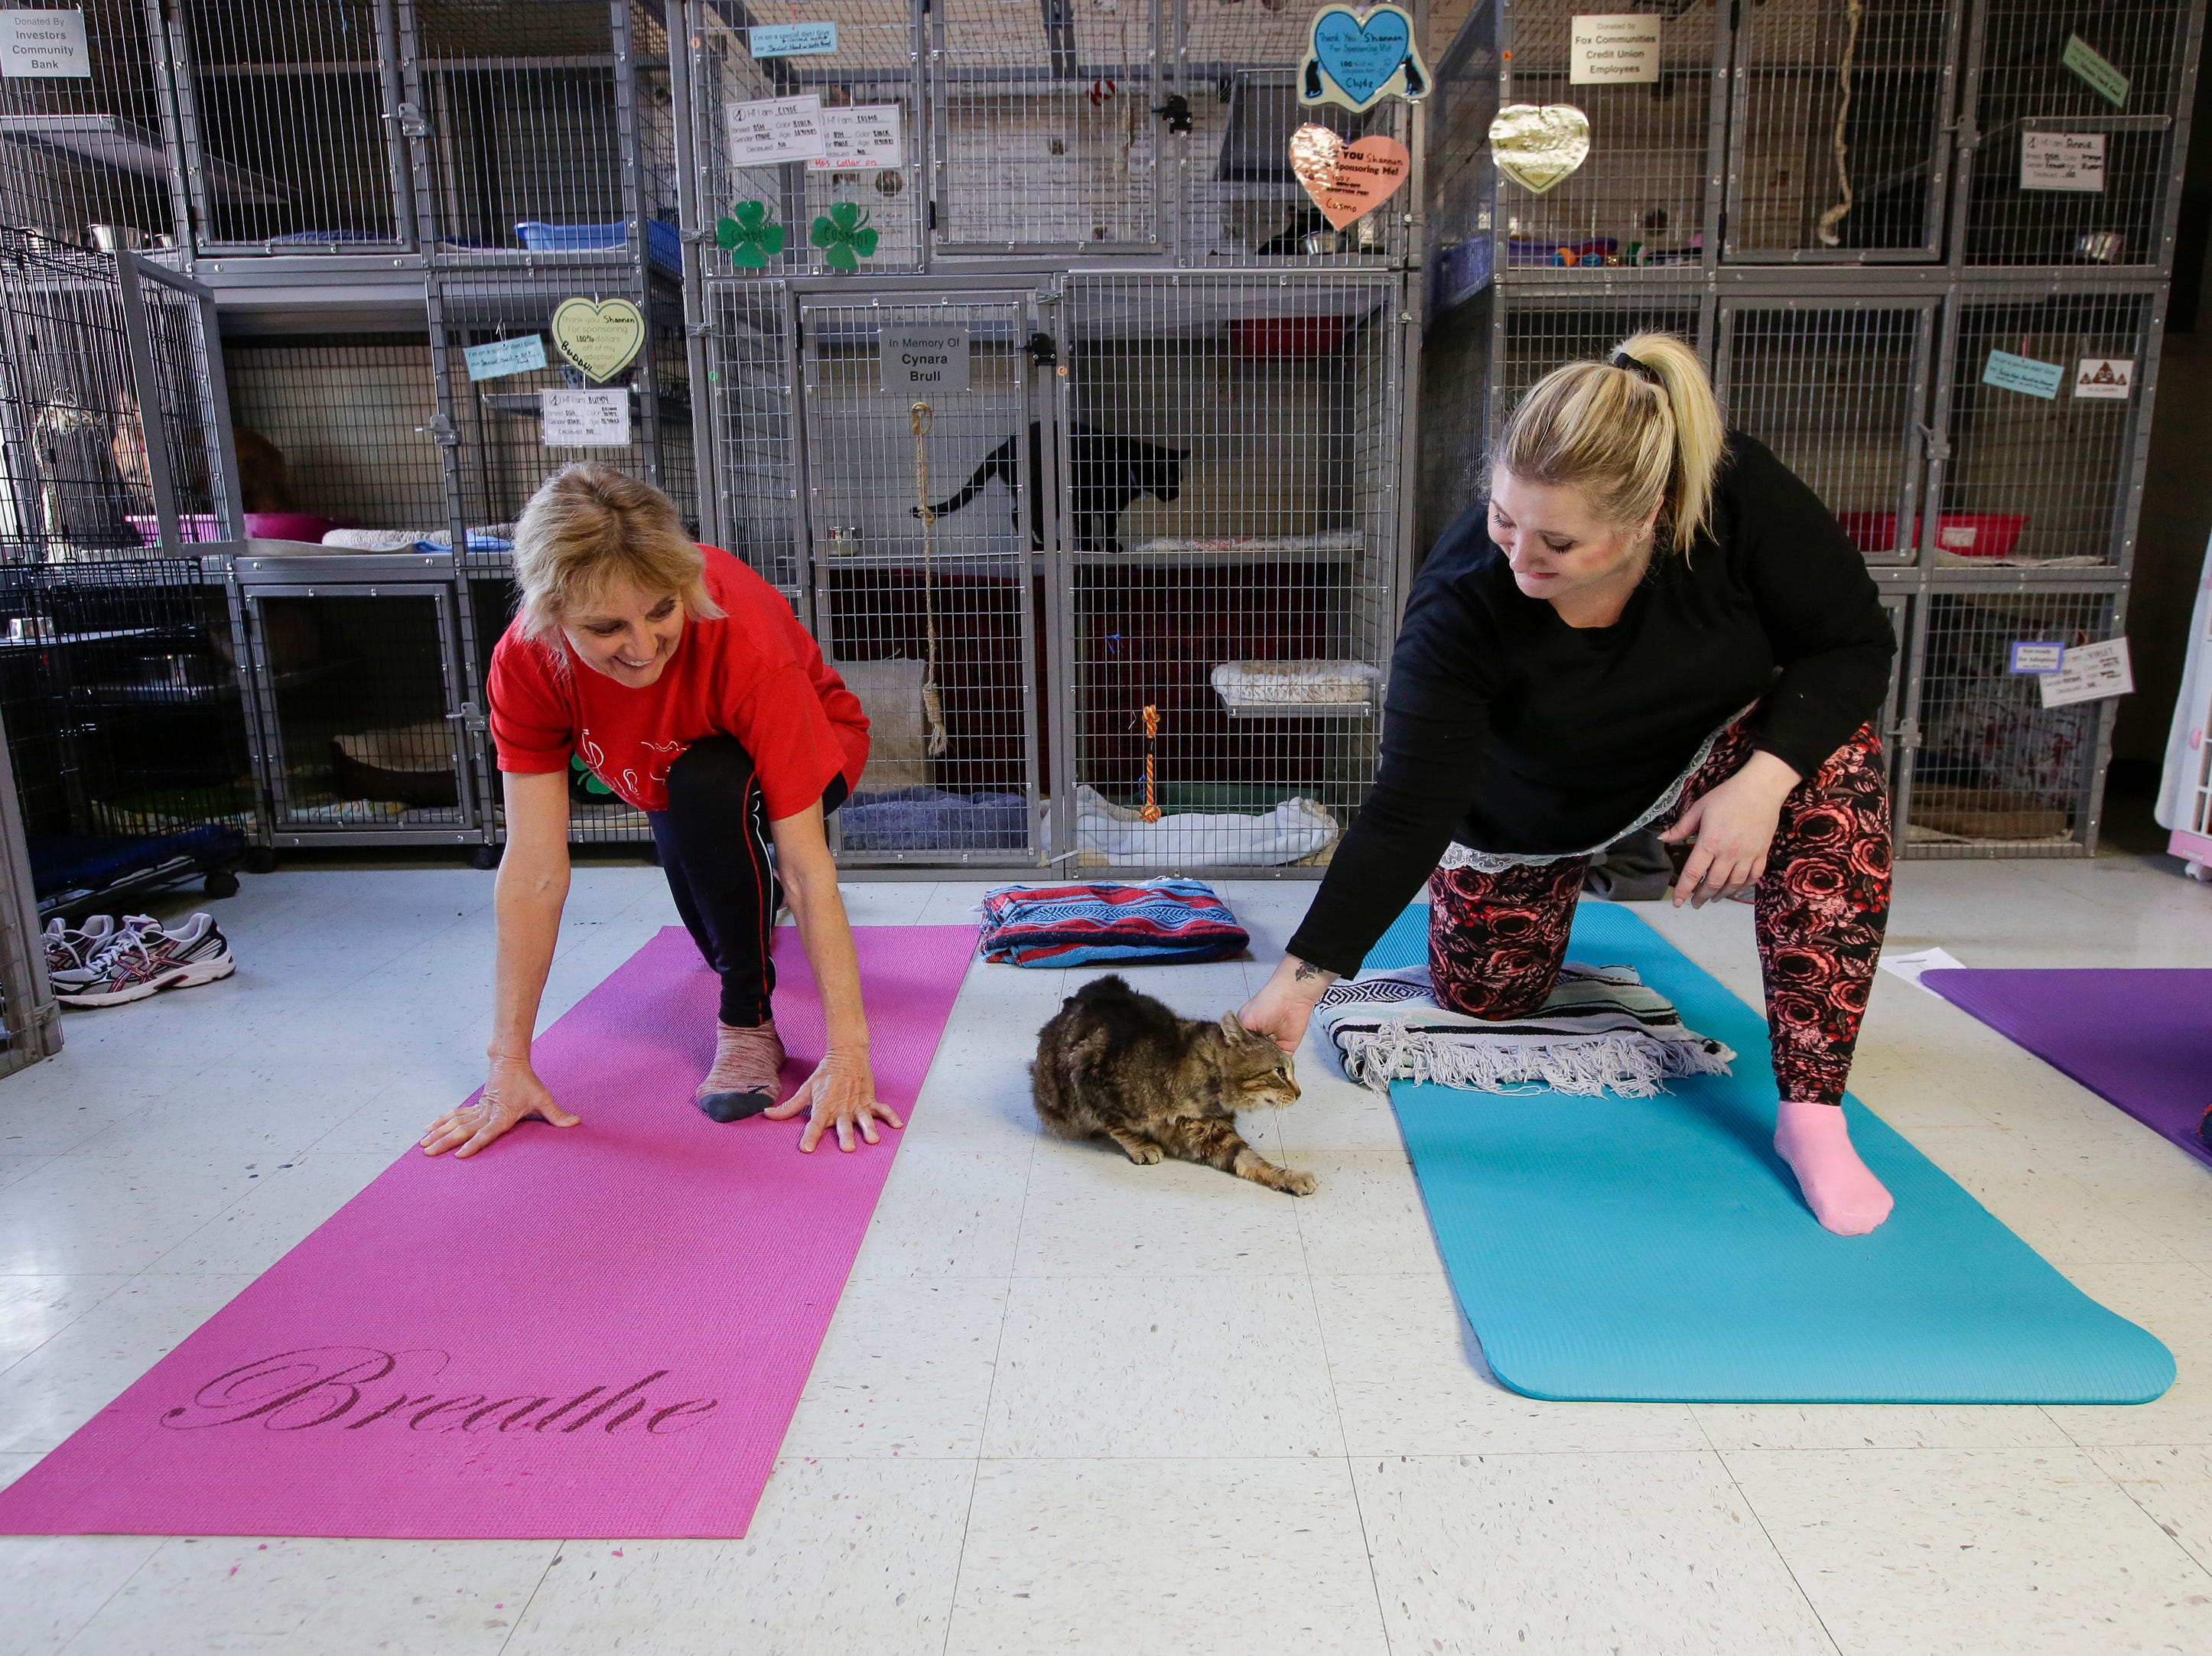 Mary Beth Kardon, left, and Shaye Van enjoy the company of Reeses during Cats on Mats yoga at the Lakeshore Humane Society Tuesday, Mar. 27, 2018, in Manitowoc, Wis. Josh Clark/USA TODAY NETWORK-Wisconsin